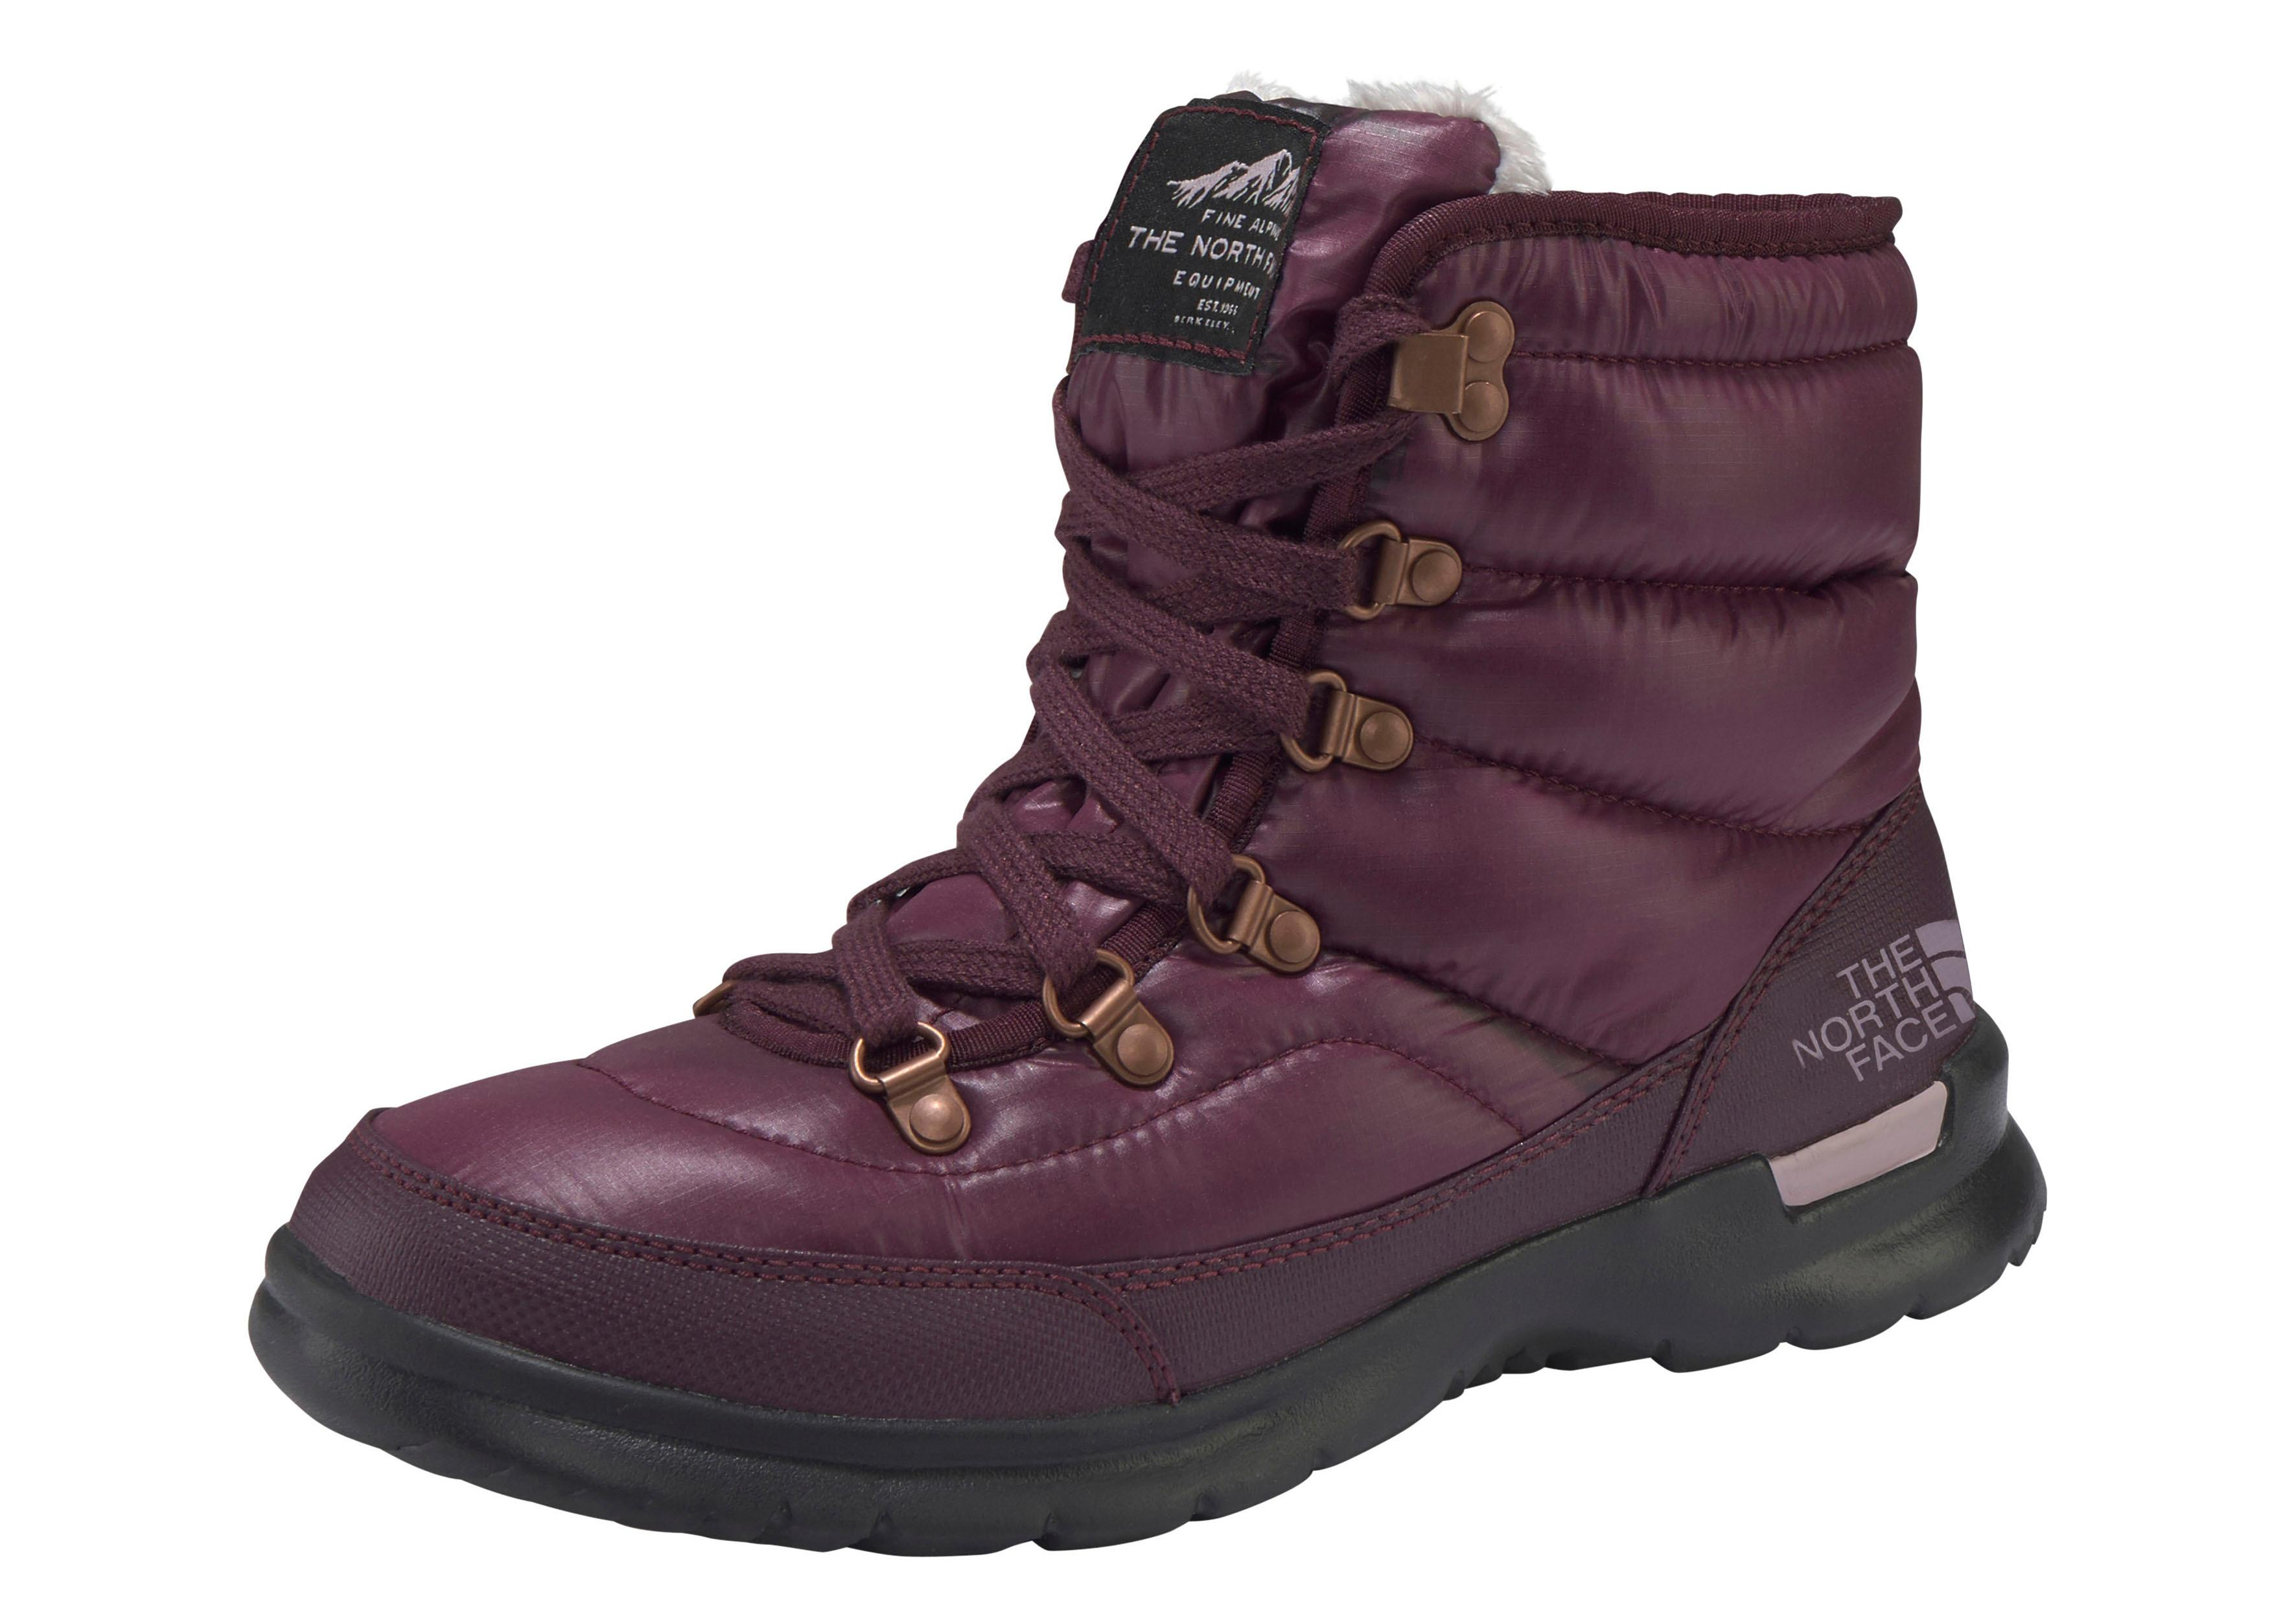 The North Face Outdoorwinterstiefel W ThermoBall? Lace | Schuhe > Outdoorschuhe > Outdoorwinterstiefel | Rot | Fleece | The North Face